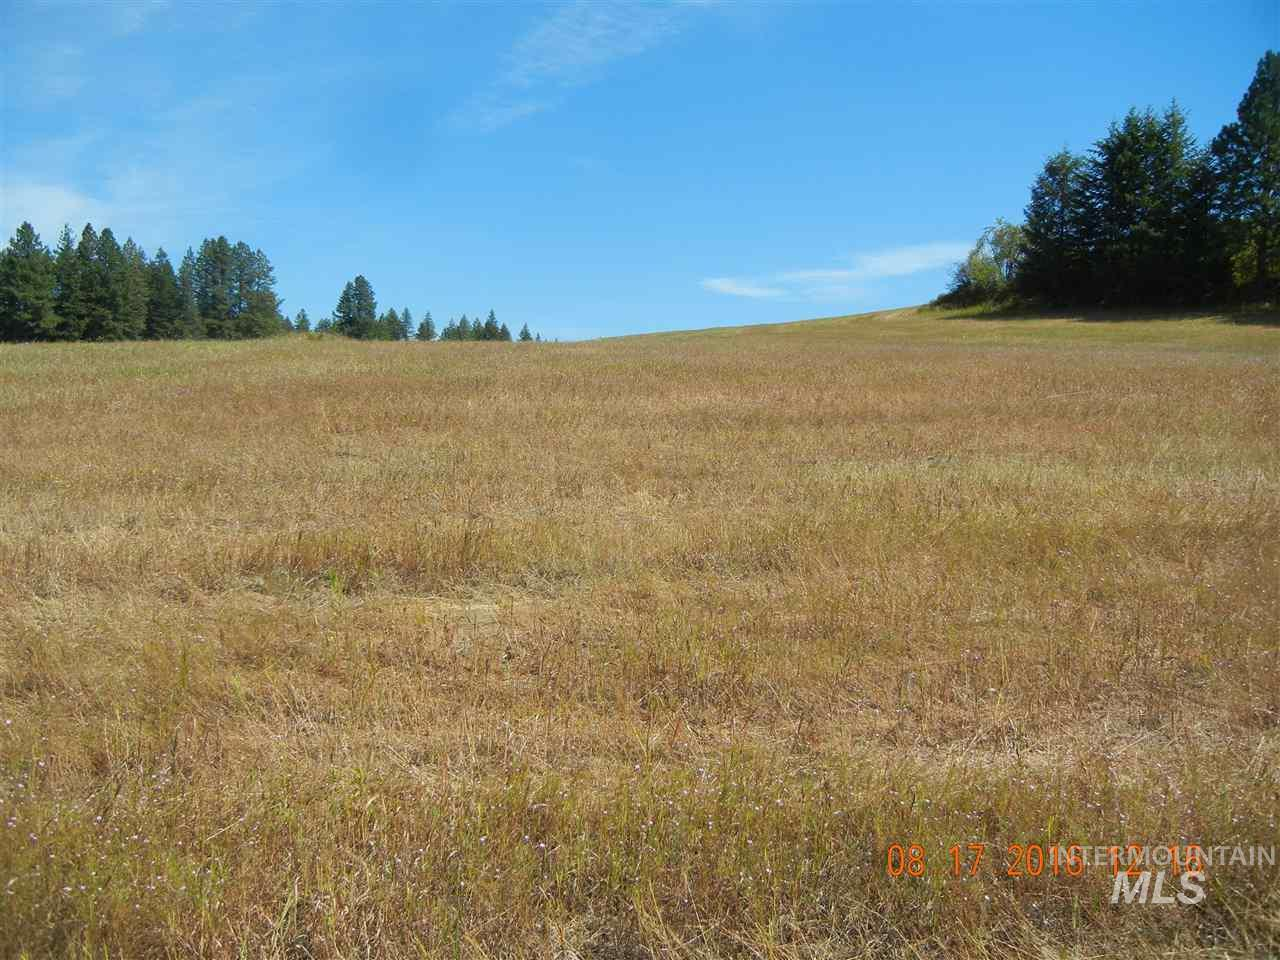 Land for Sale at 00 Highway 3 Kendrick, Idaho 83537